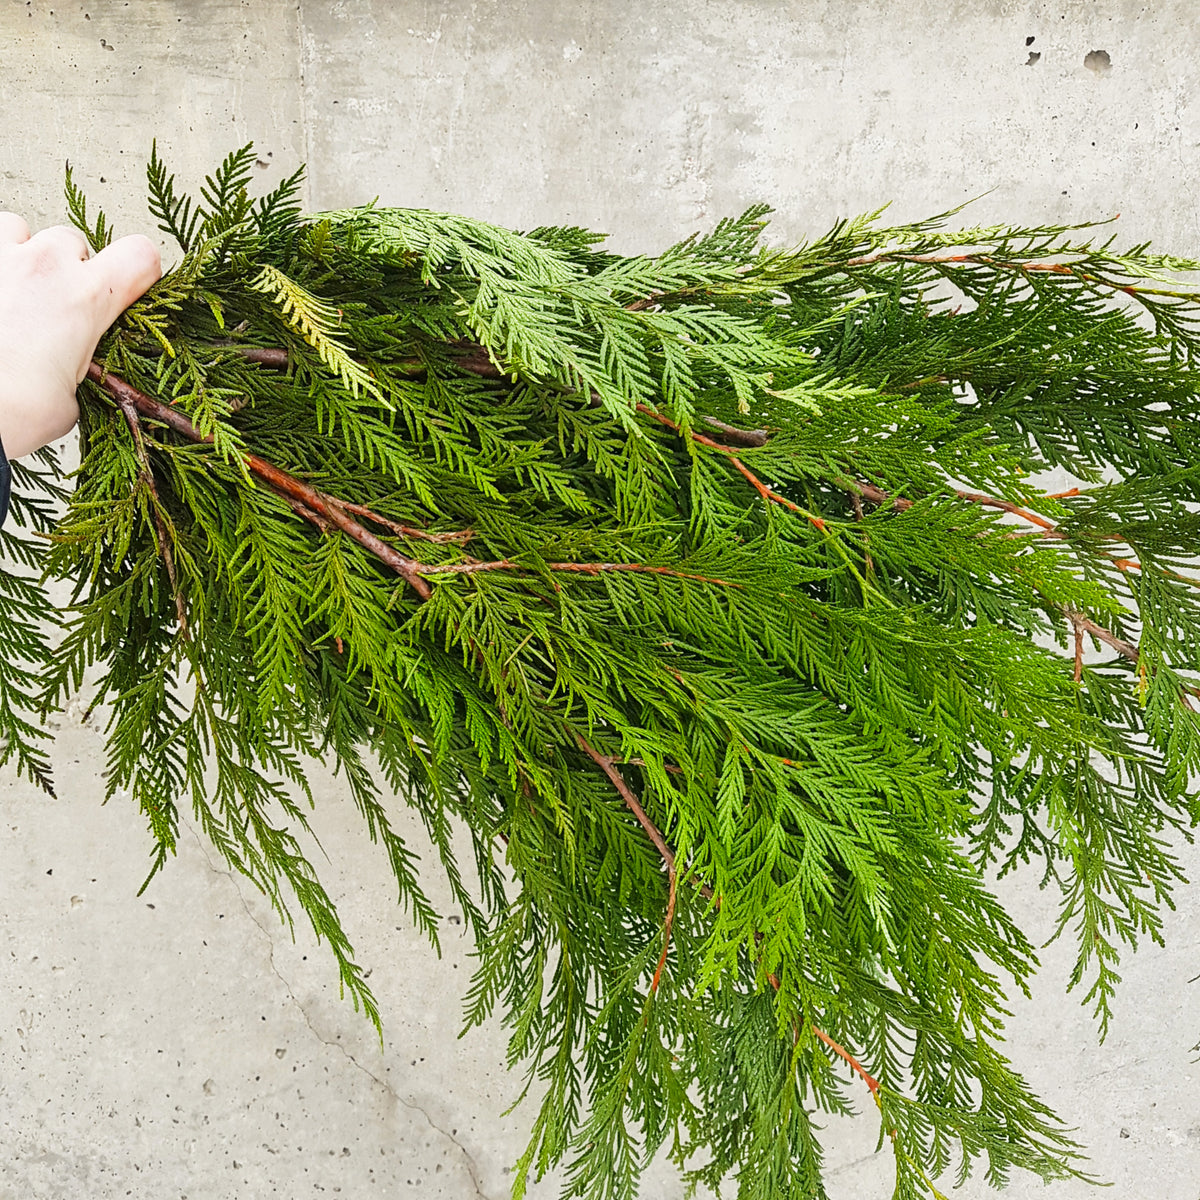 Winter Evergreen Assortment